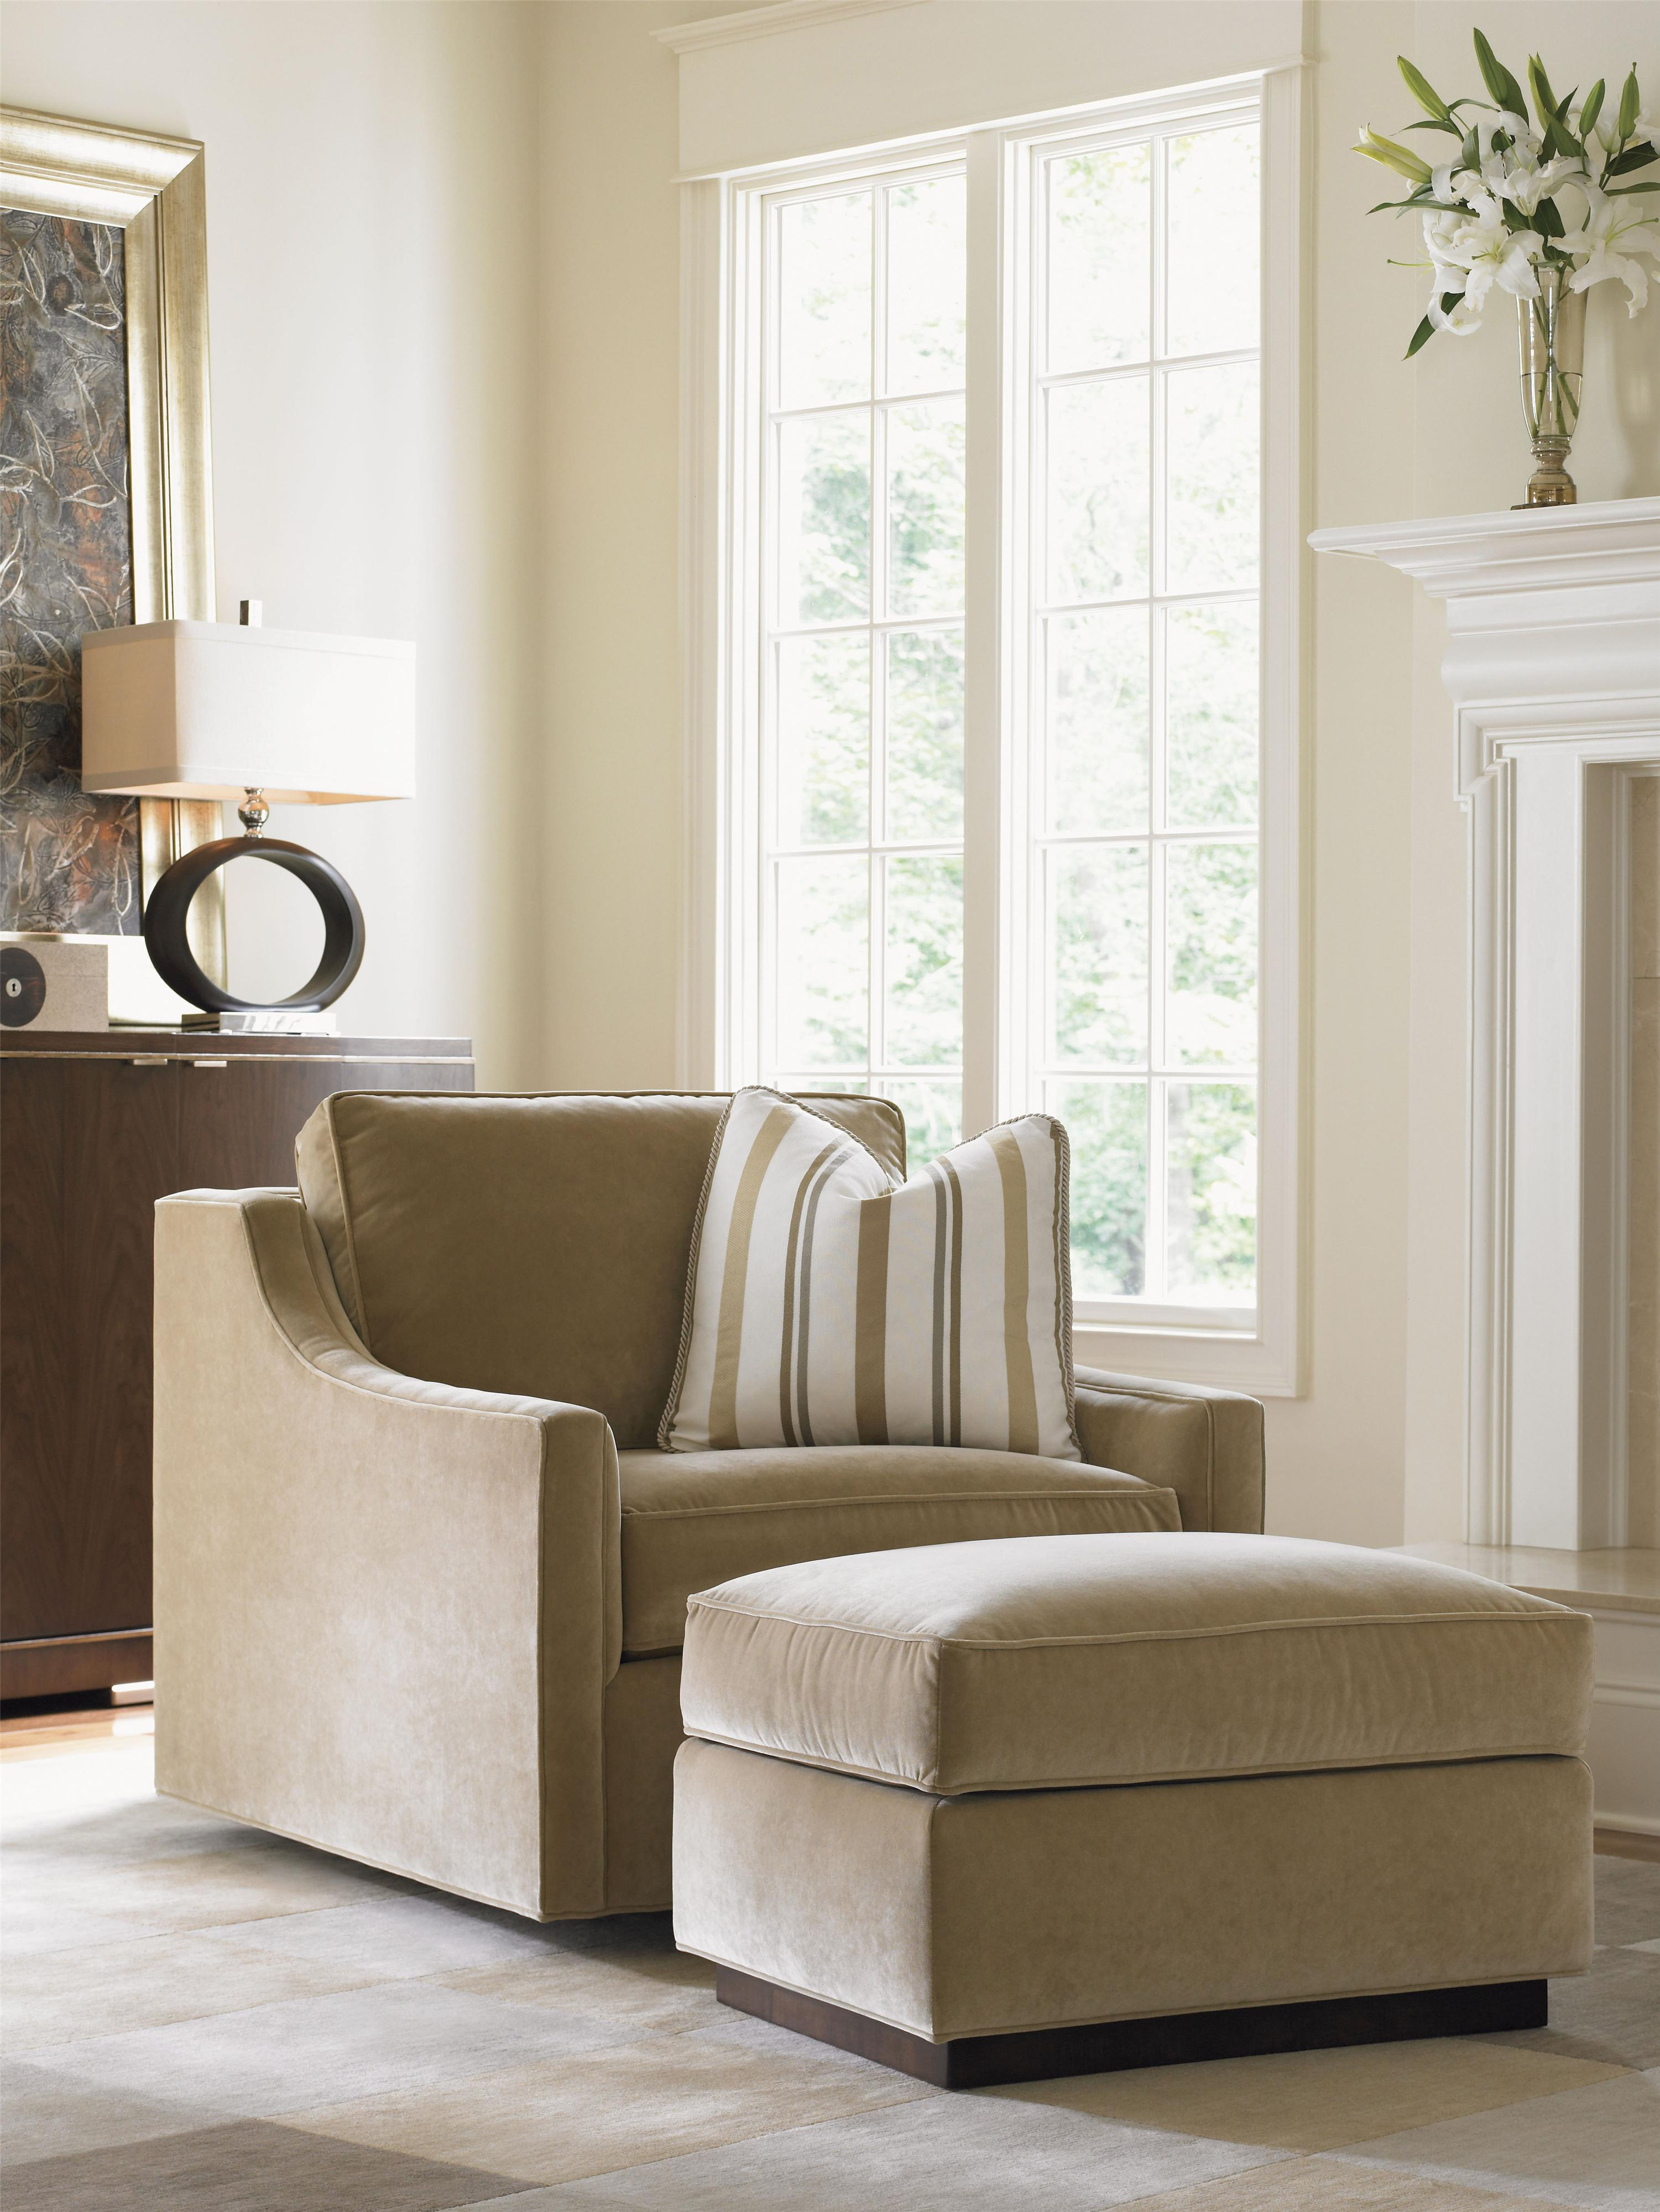 Lexington Tower Place 7566 44 Contemporary Bartlett Ottoman With Exposed Wood Base Baer 39 S